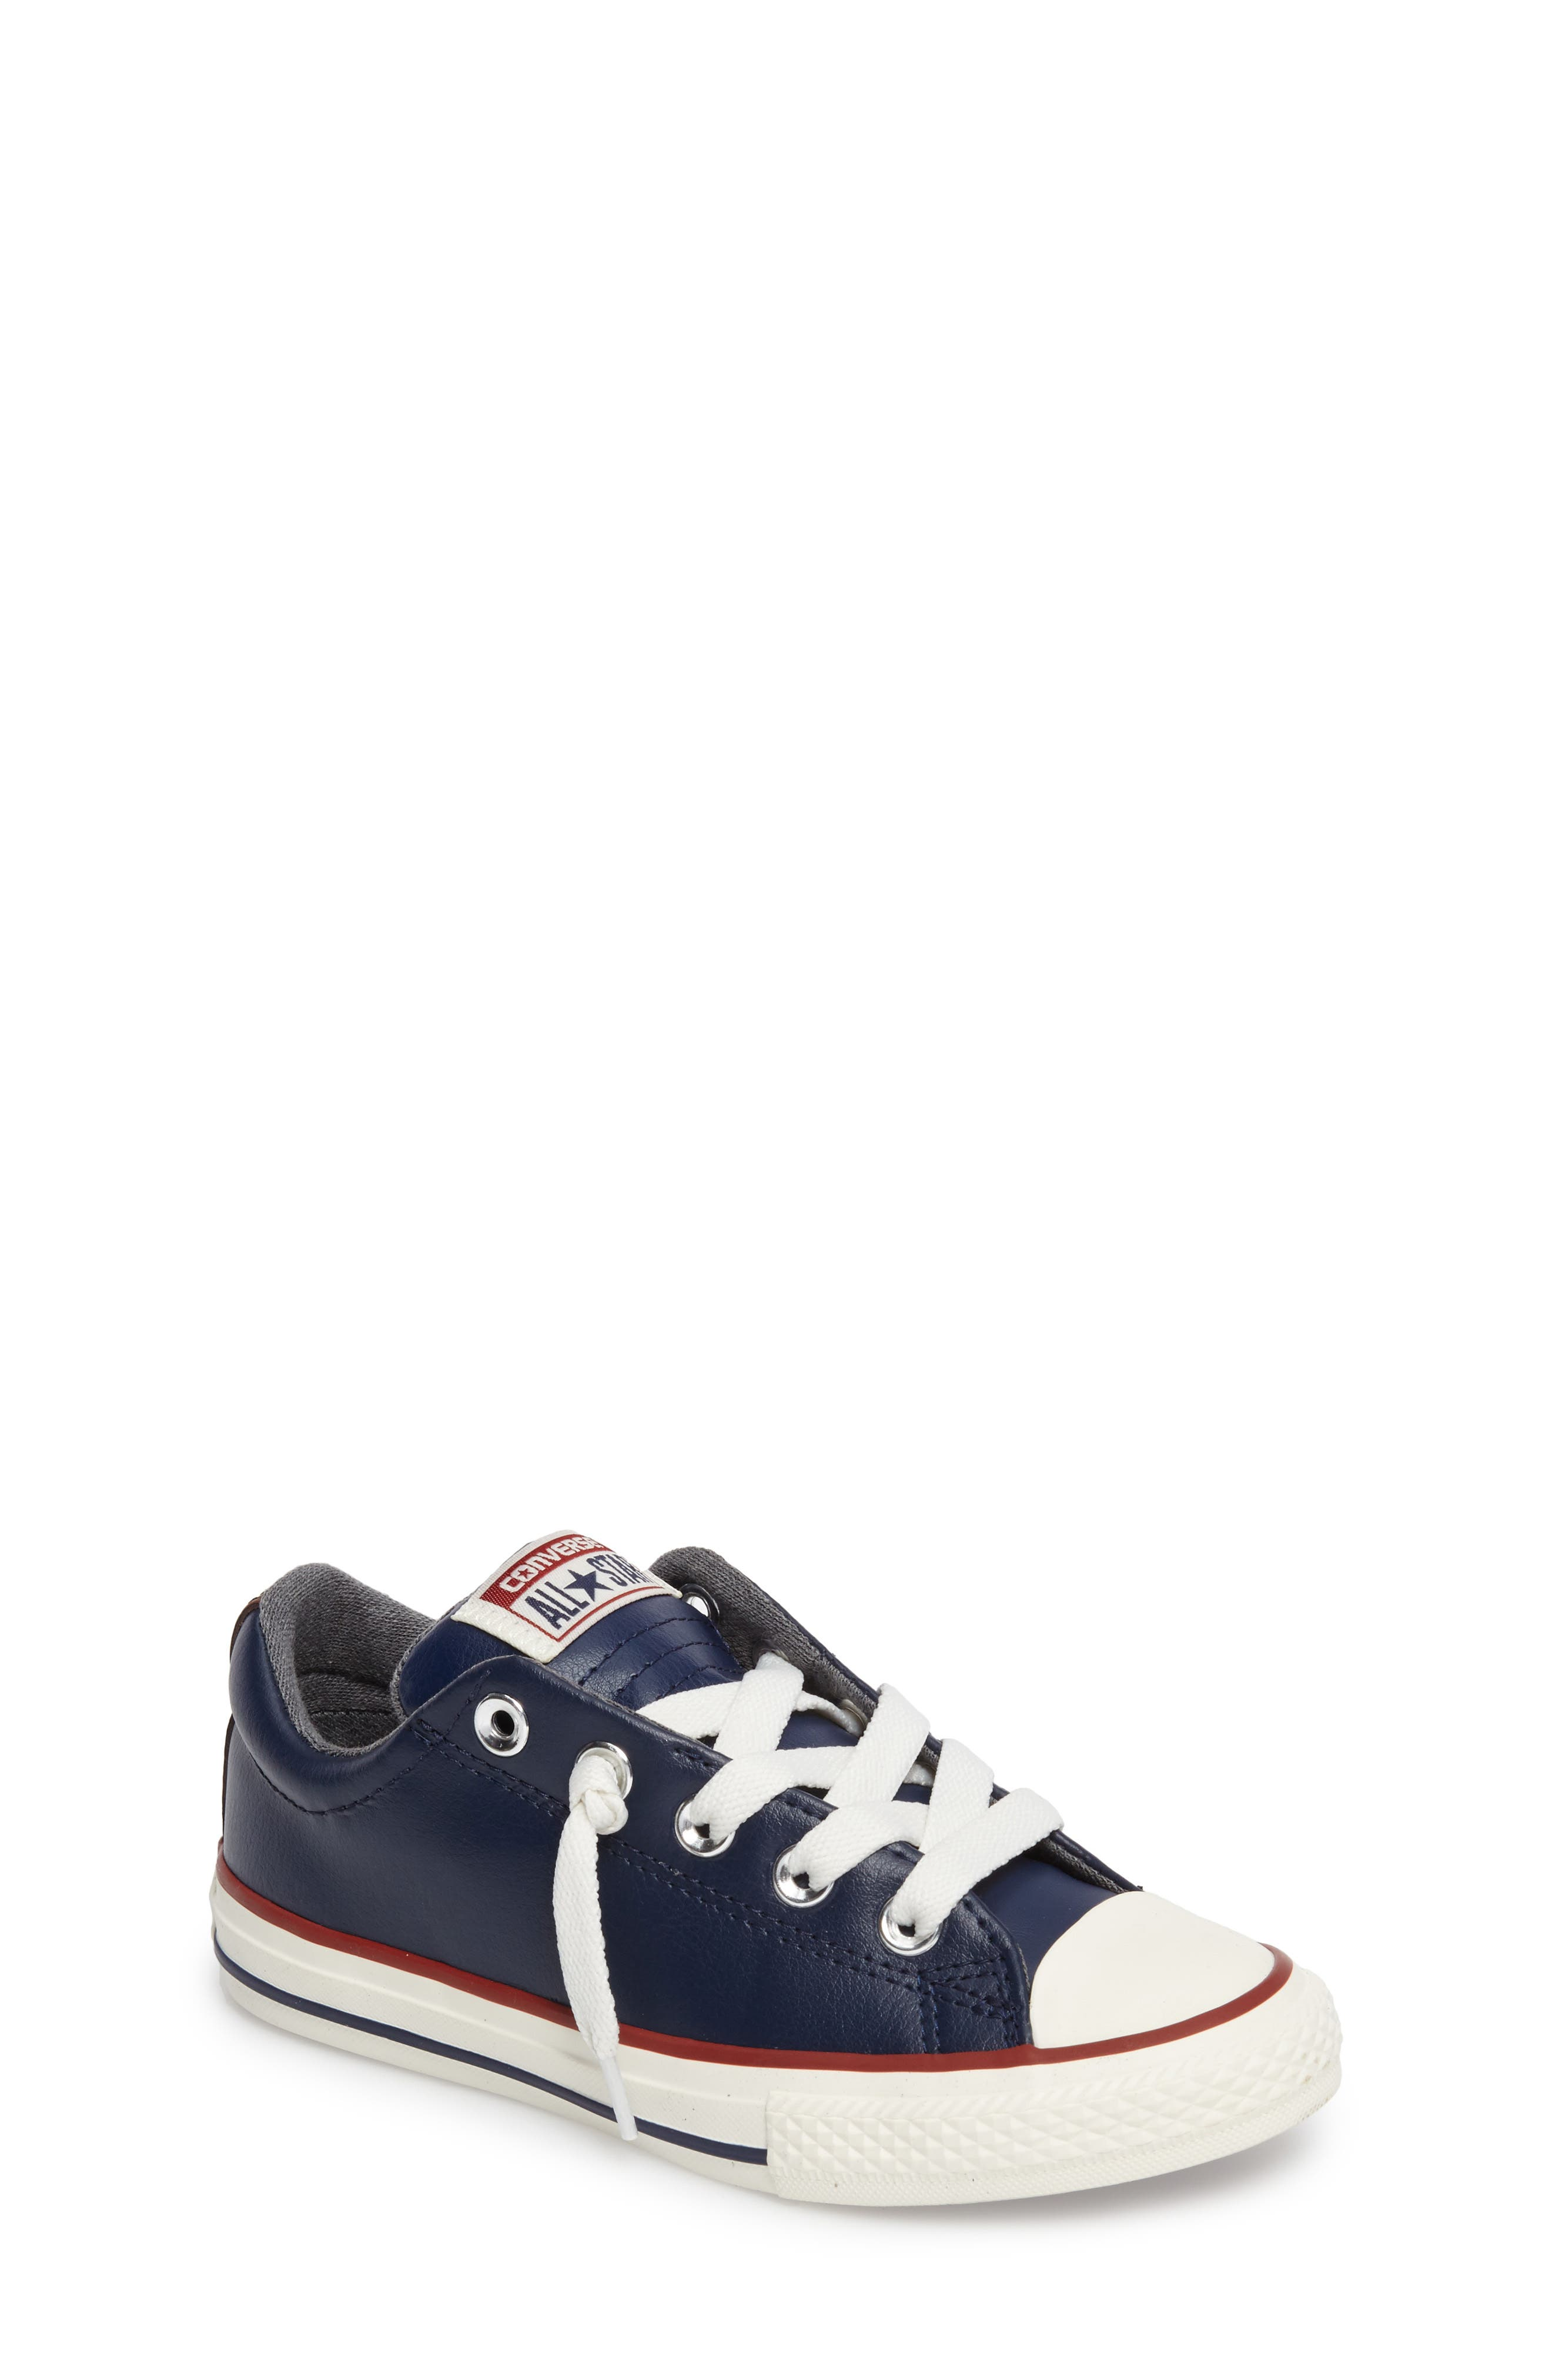 Alternate Image 1 Selected - Converse Chuck Taylor® All Star® 'Street Ox' Sneaker (Baby, Walker, Toddler, Little Kid & Big Kid)